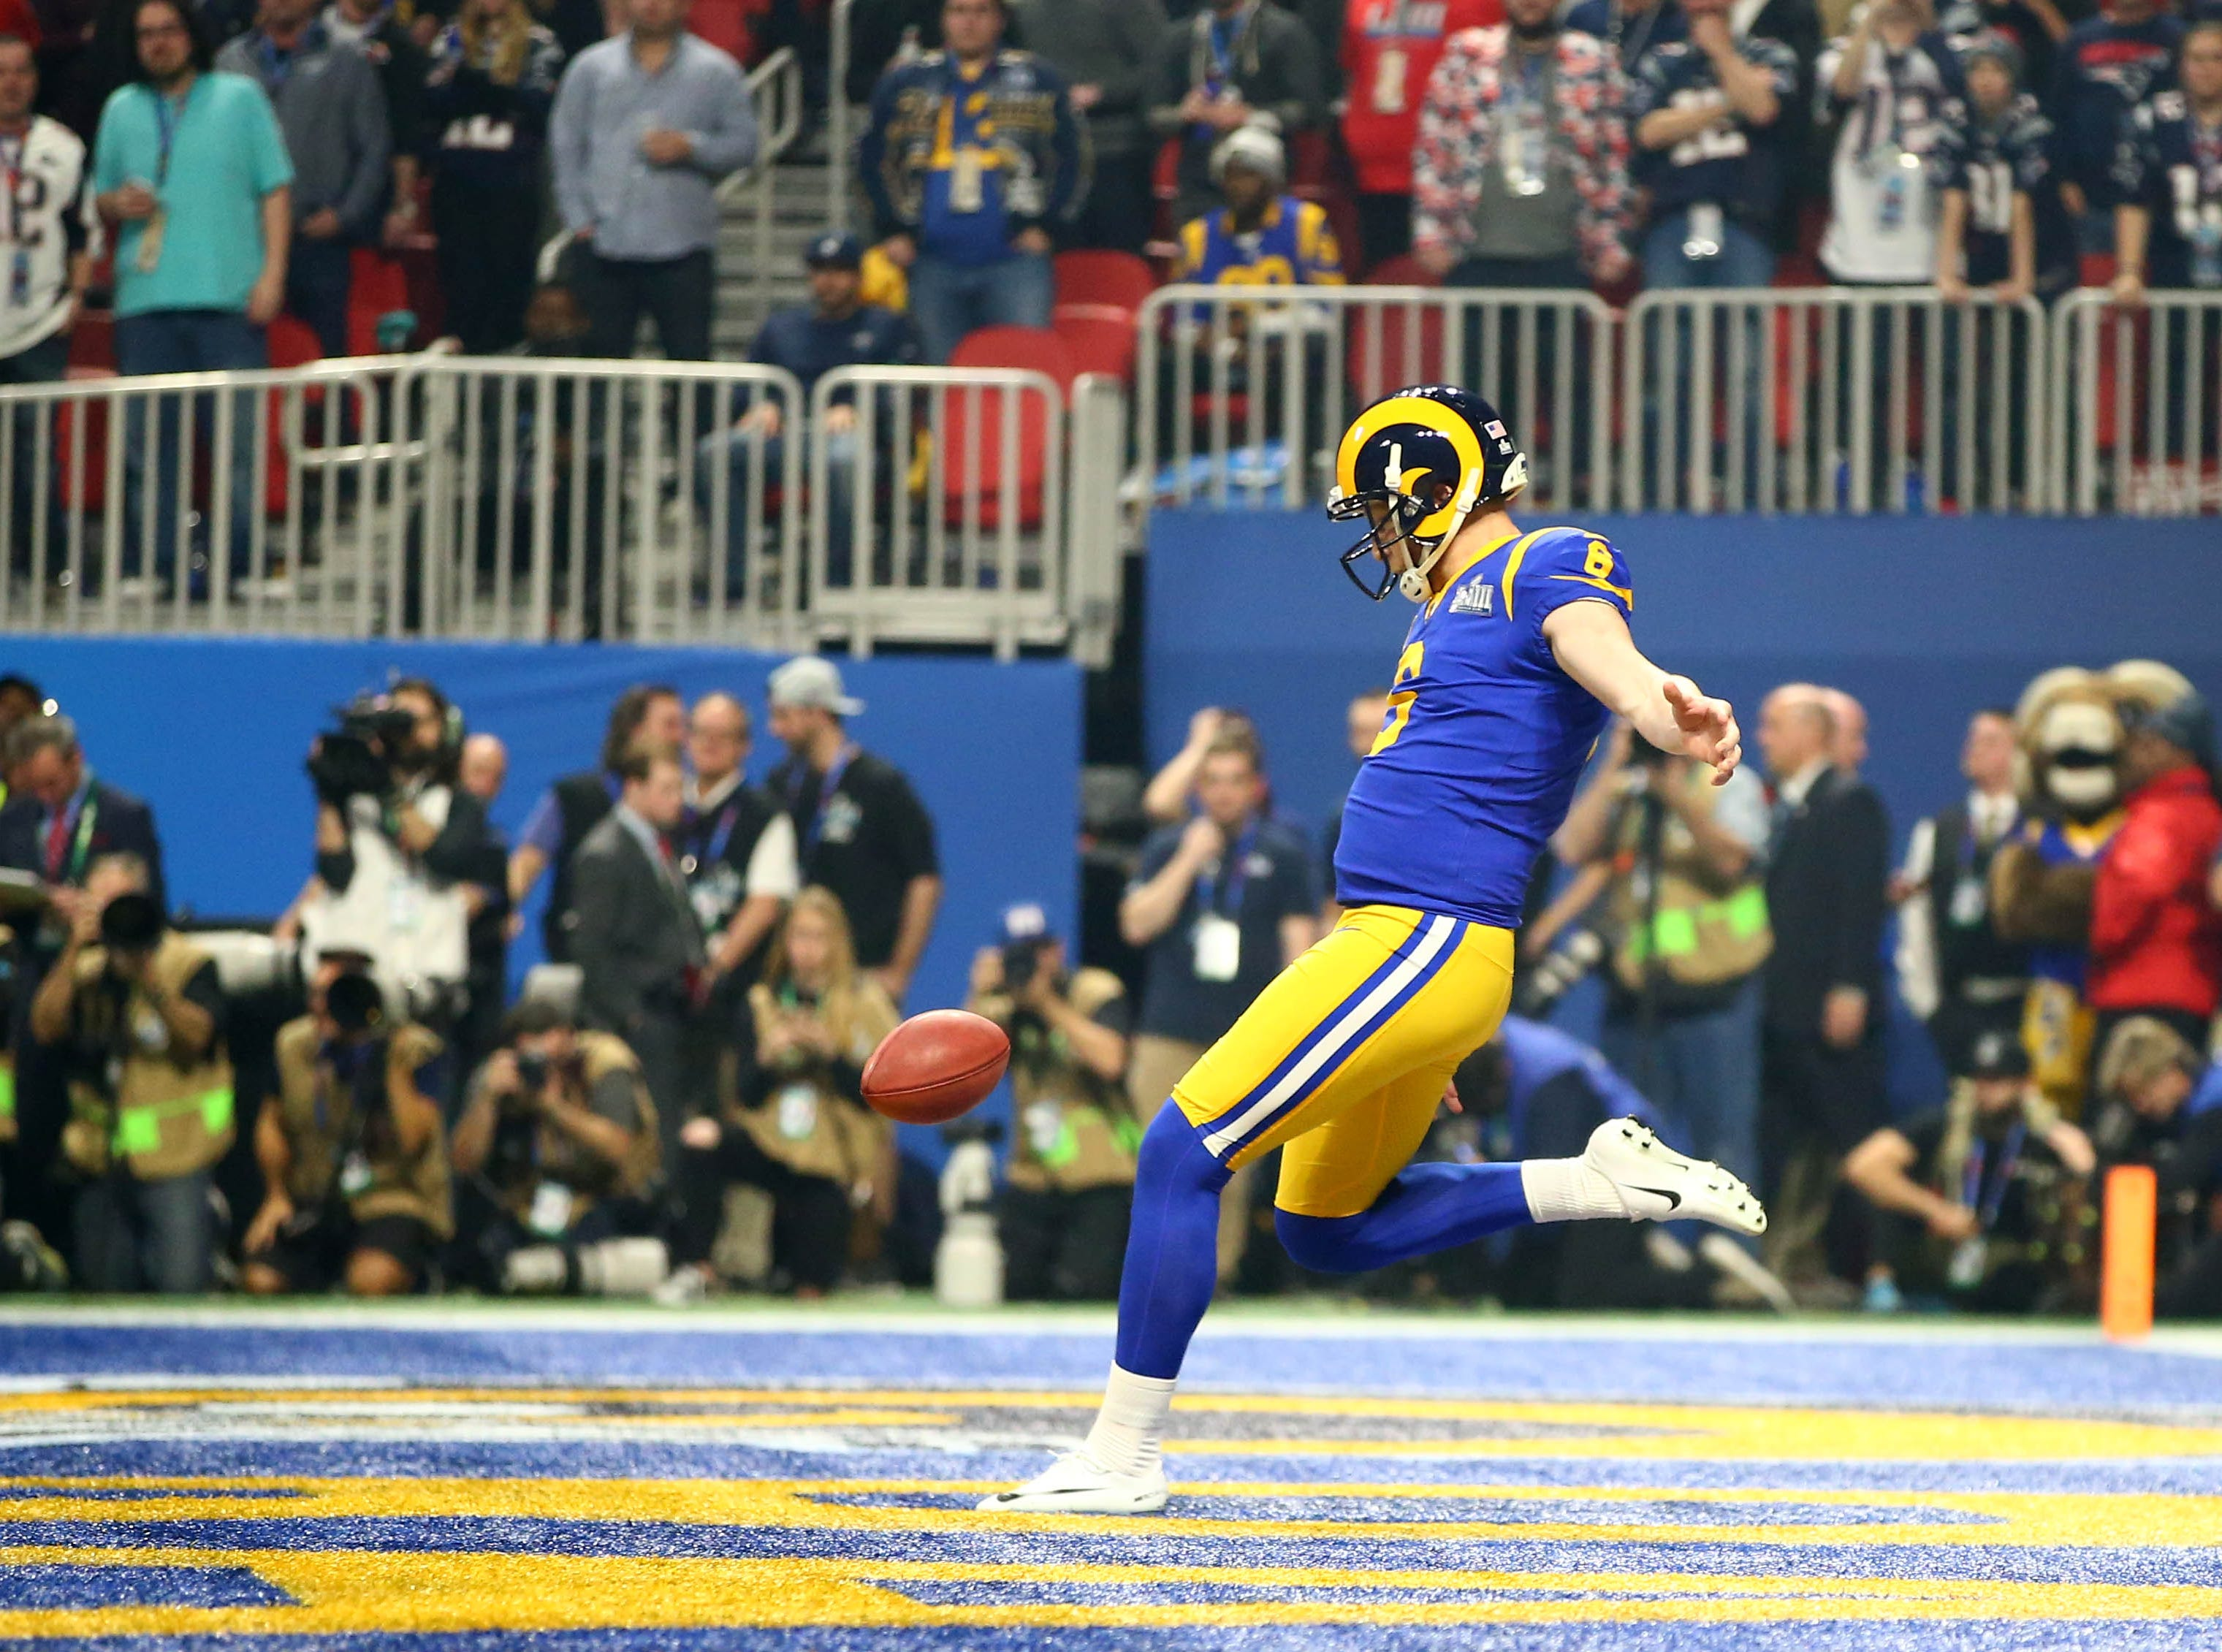 Los Angeles Rams punter Johnny Hekker (6) booms a Super Bowl-record 65-yard punt against the New England Patriots during the third quarter of Super Bowl LIII at Mercedes-Benz Stadium.